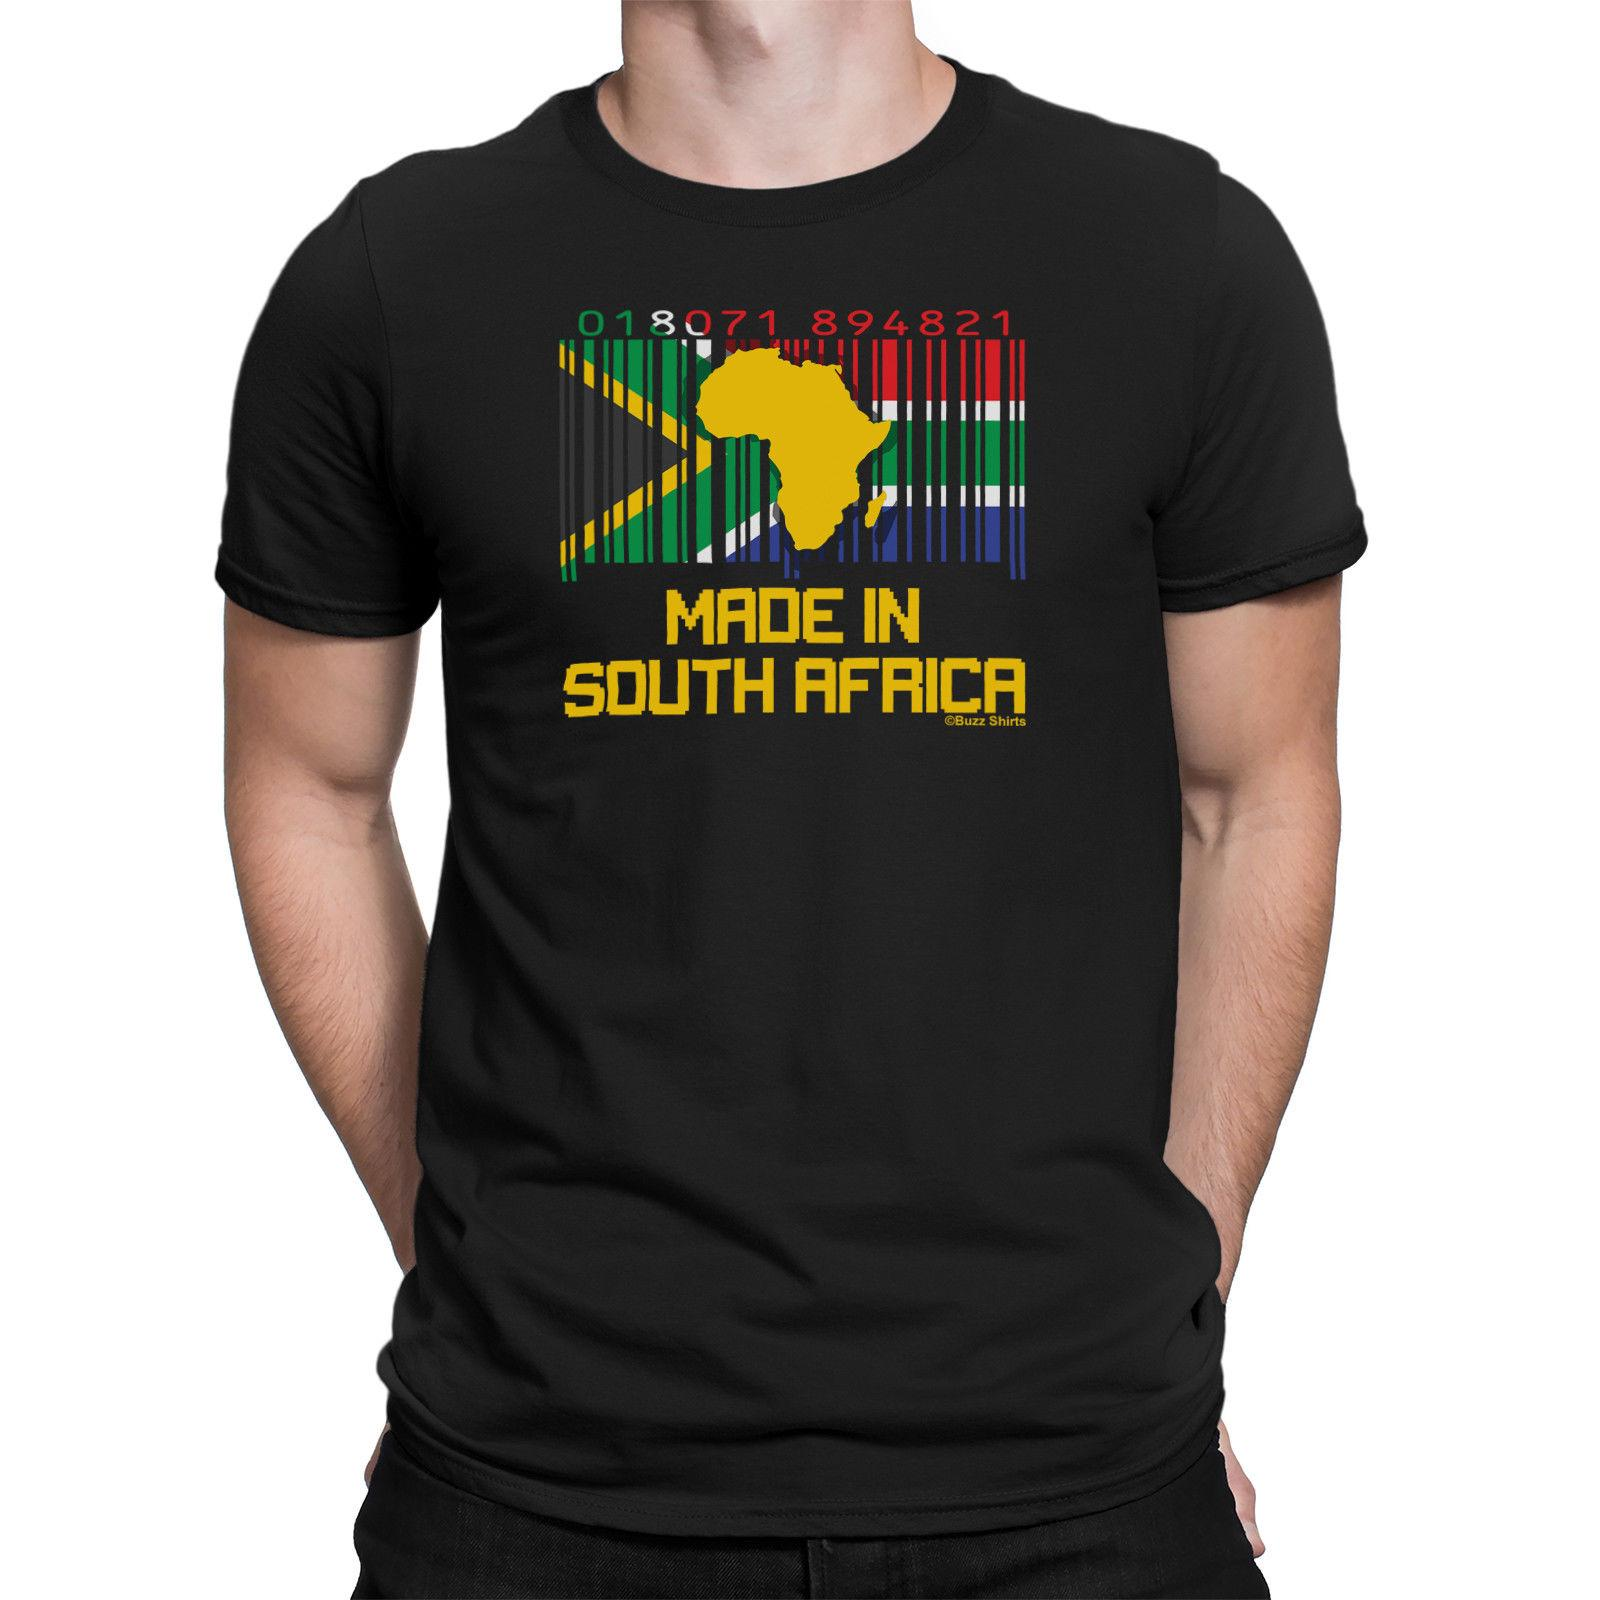 Dettagli zu Mens T-Shirt SOUTH AFRICAN BARCODE Made In RUGBY CALCIO Tee SUDAFRICA